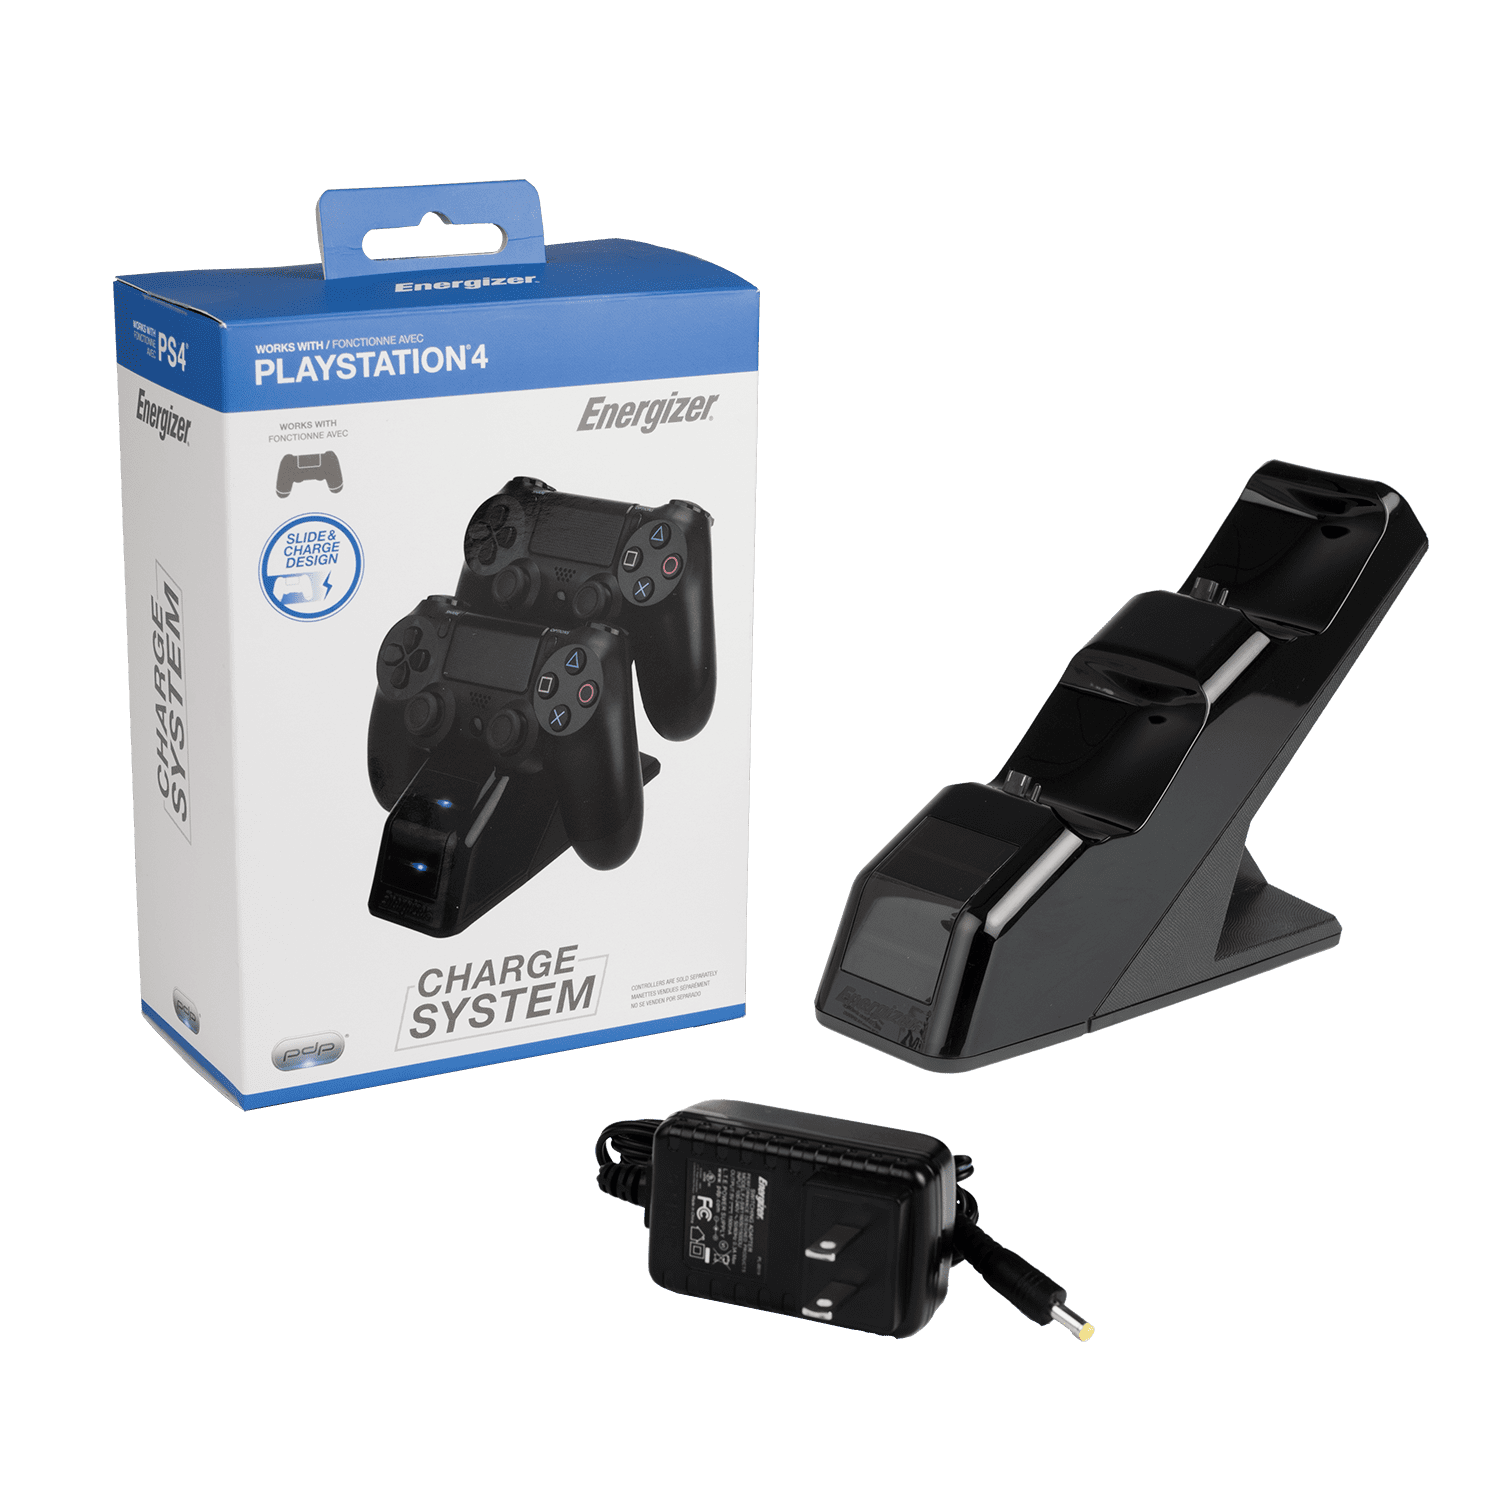 PDP Energizer Playstation 4 Controller Charger Charging Station, Black, 0019 by PDP